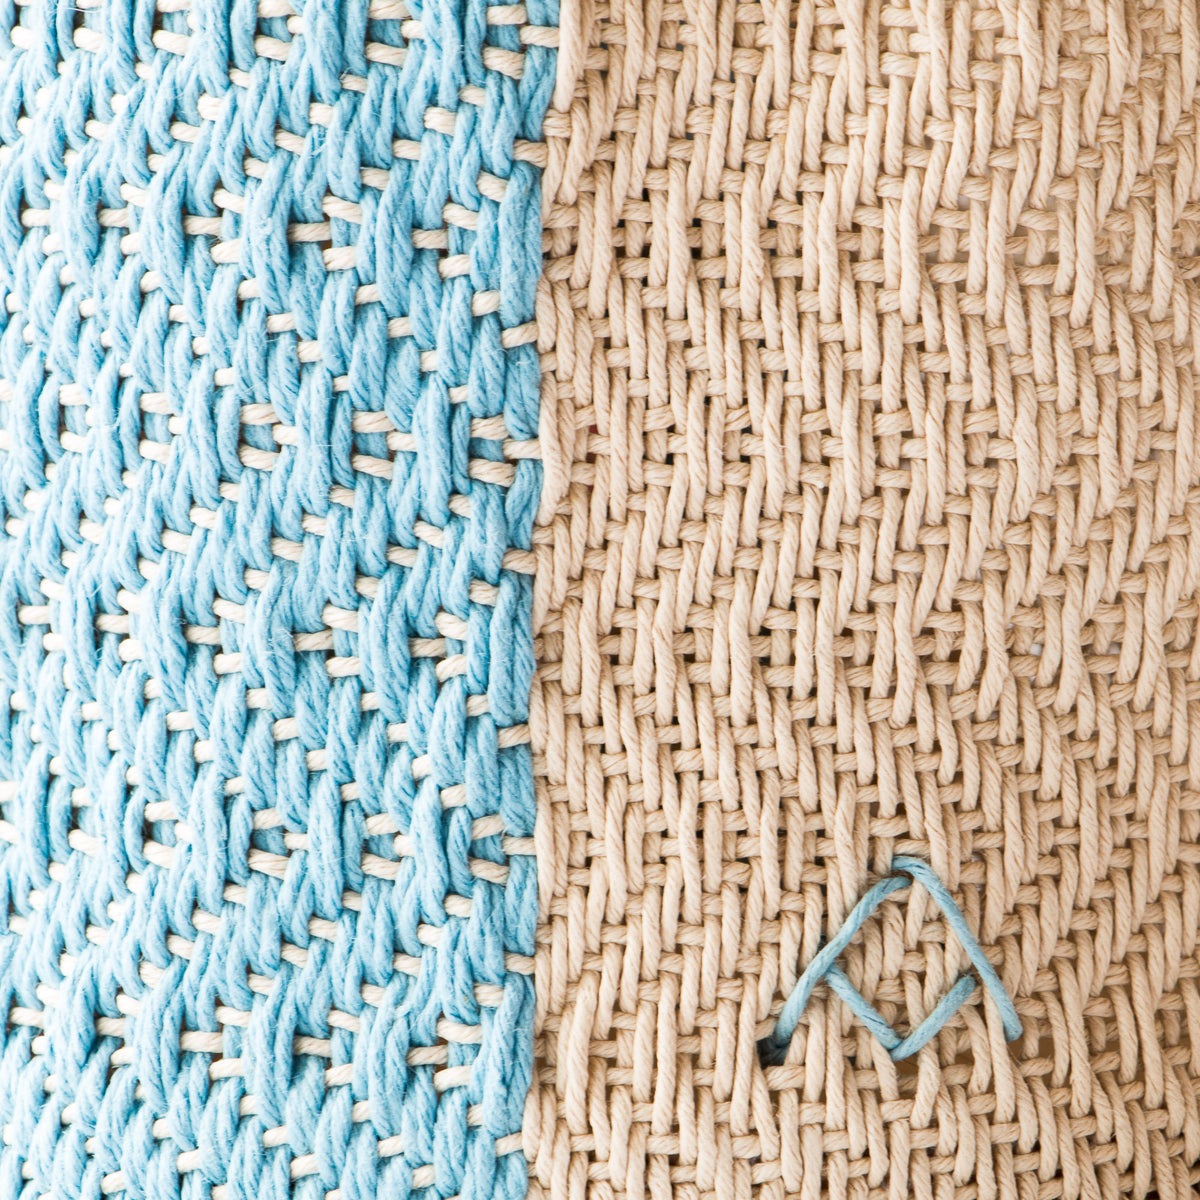 Detail of Light Blue & Ecru - Hemp Table Basket (Medium) - Handwoven in Montreal, Quebec, Canada - Sold by Chic & Basta